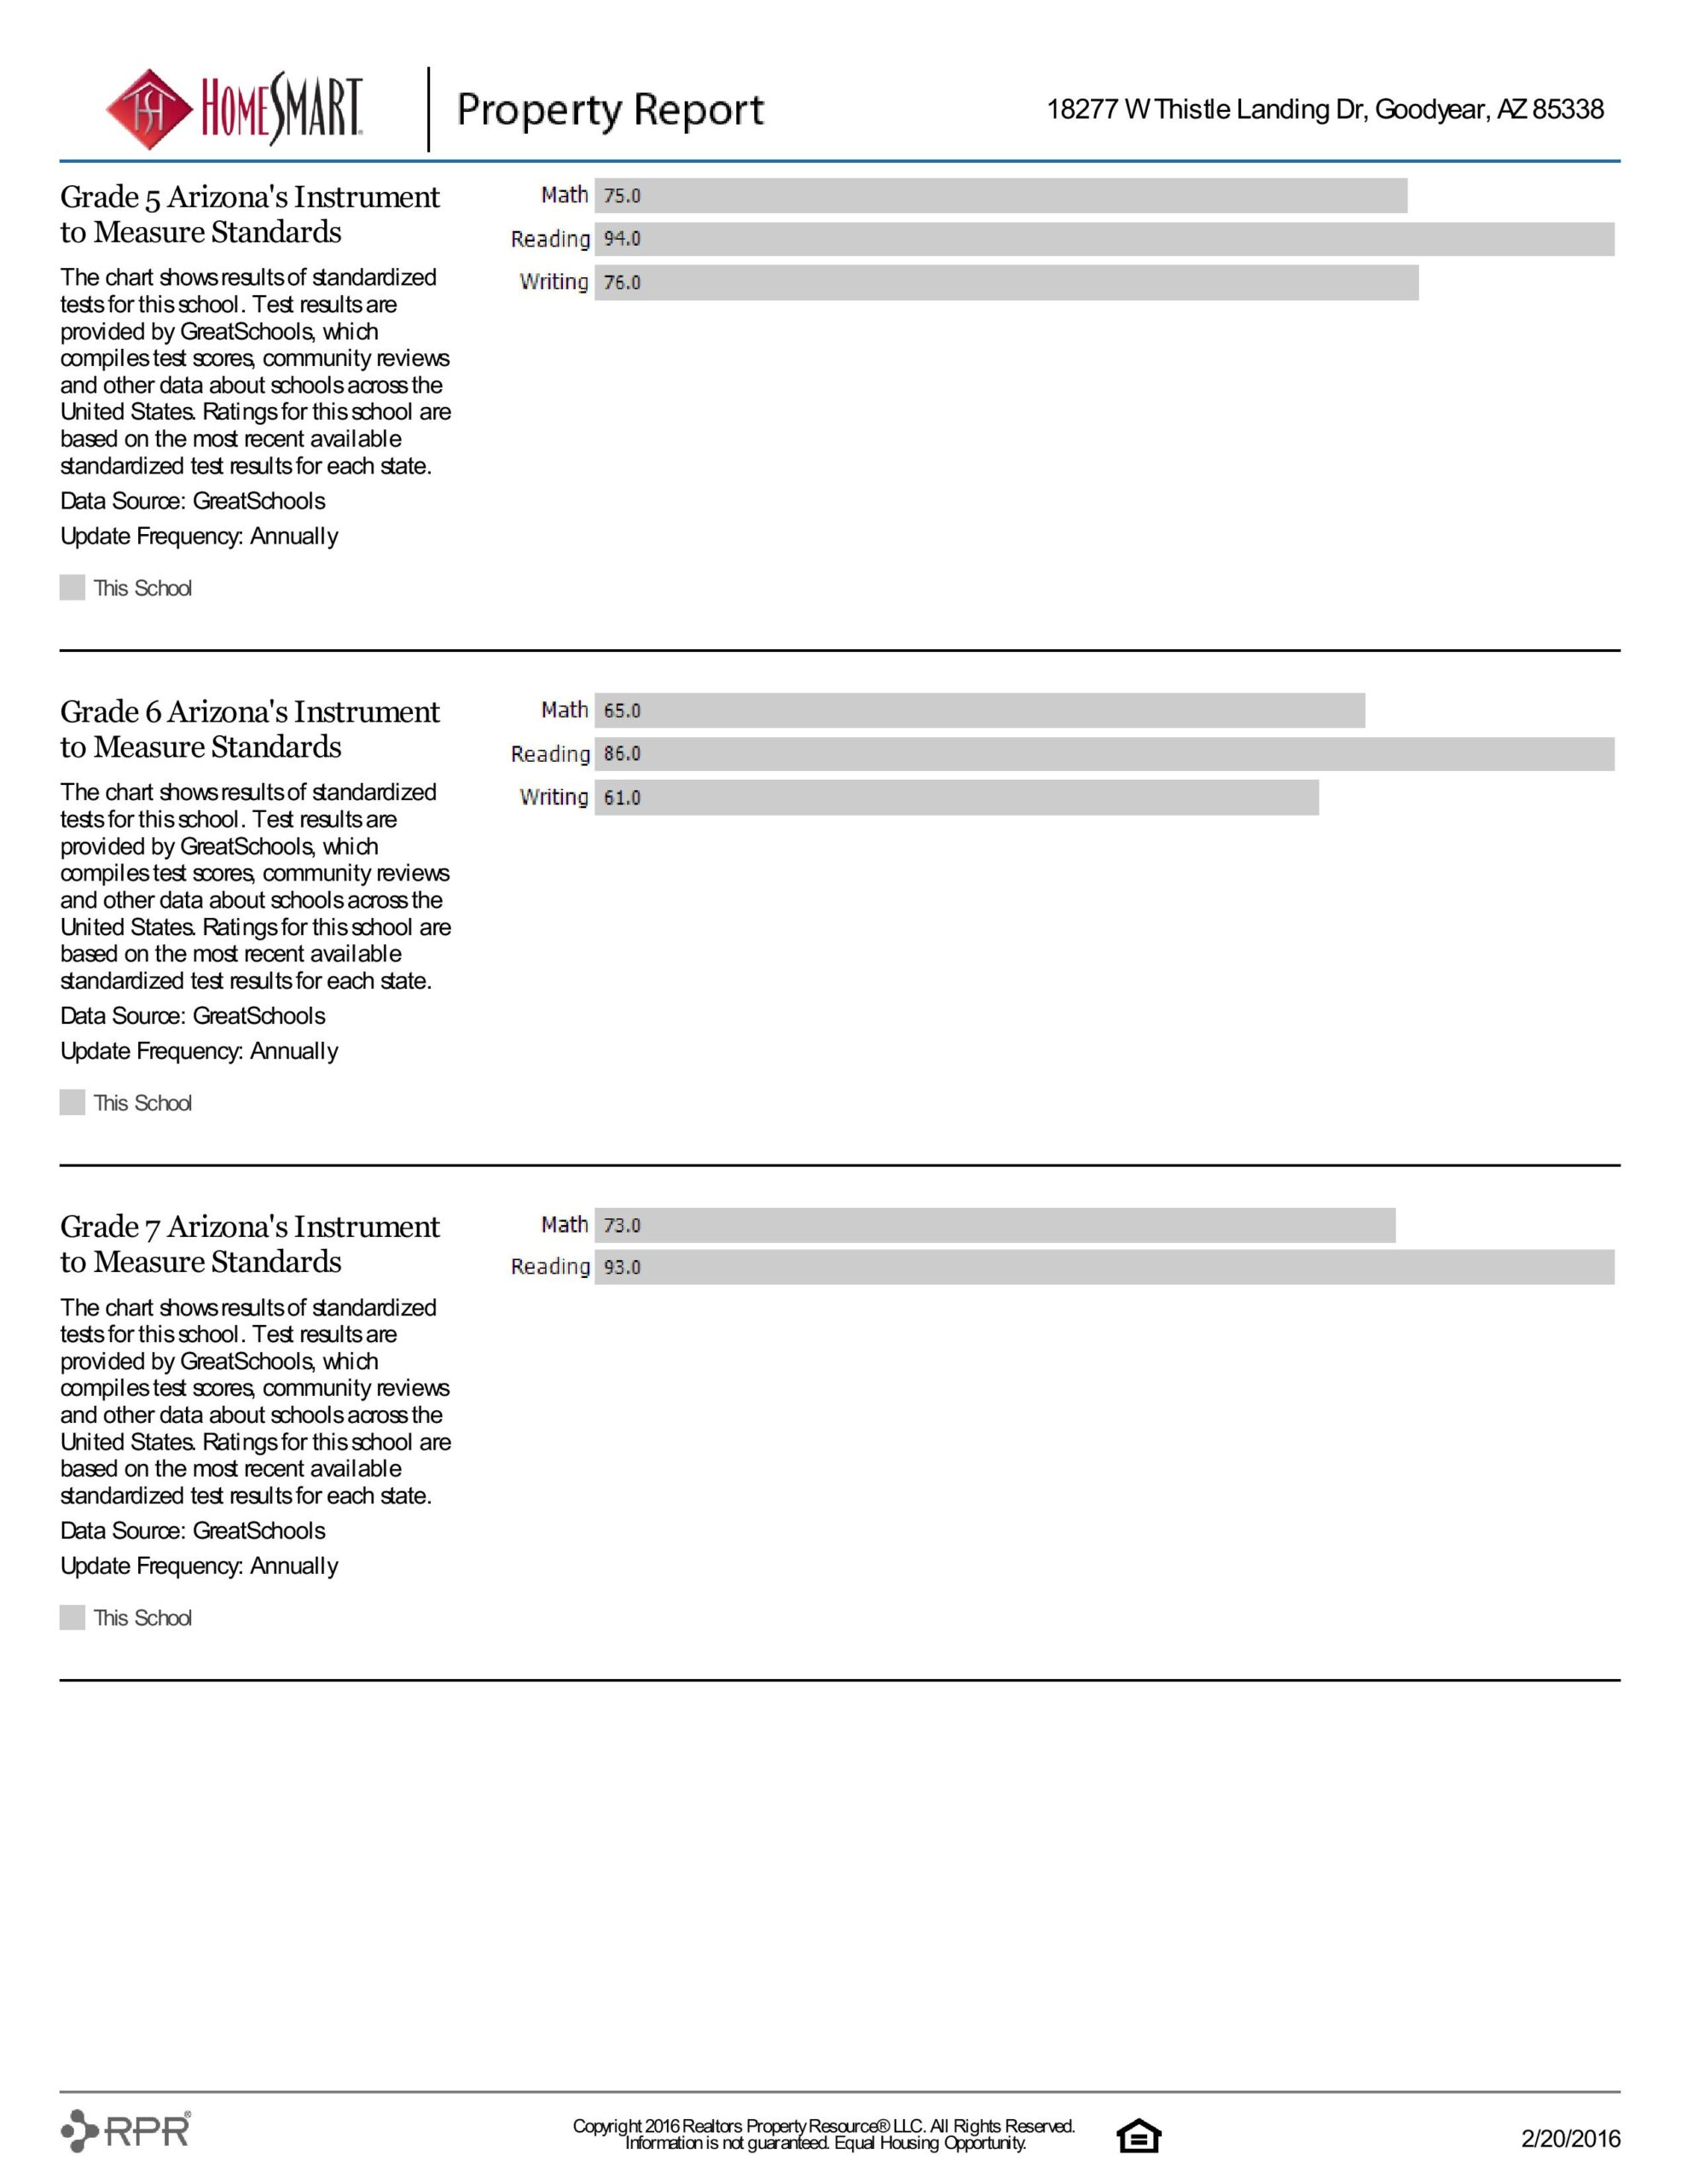 18277 W THISTLE LANDING DR PROPERTY REPORT-page-034